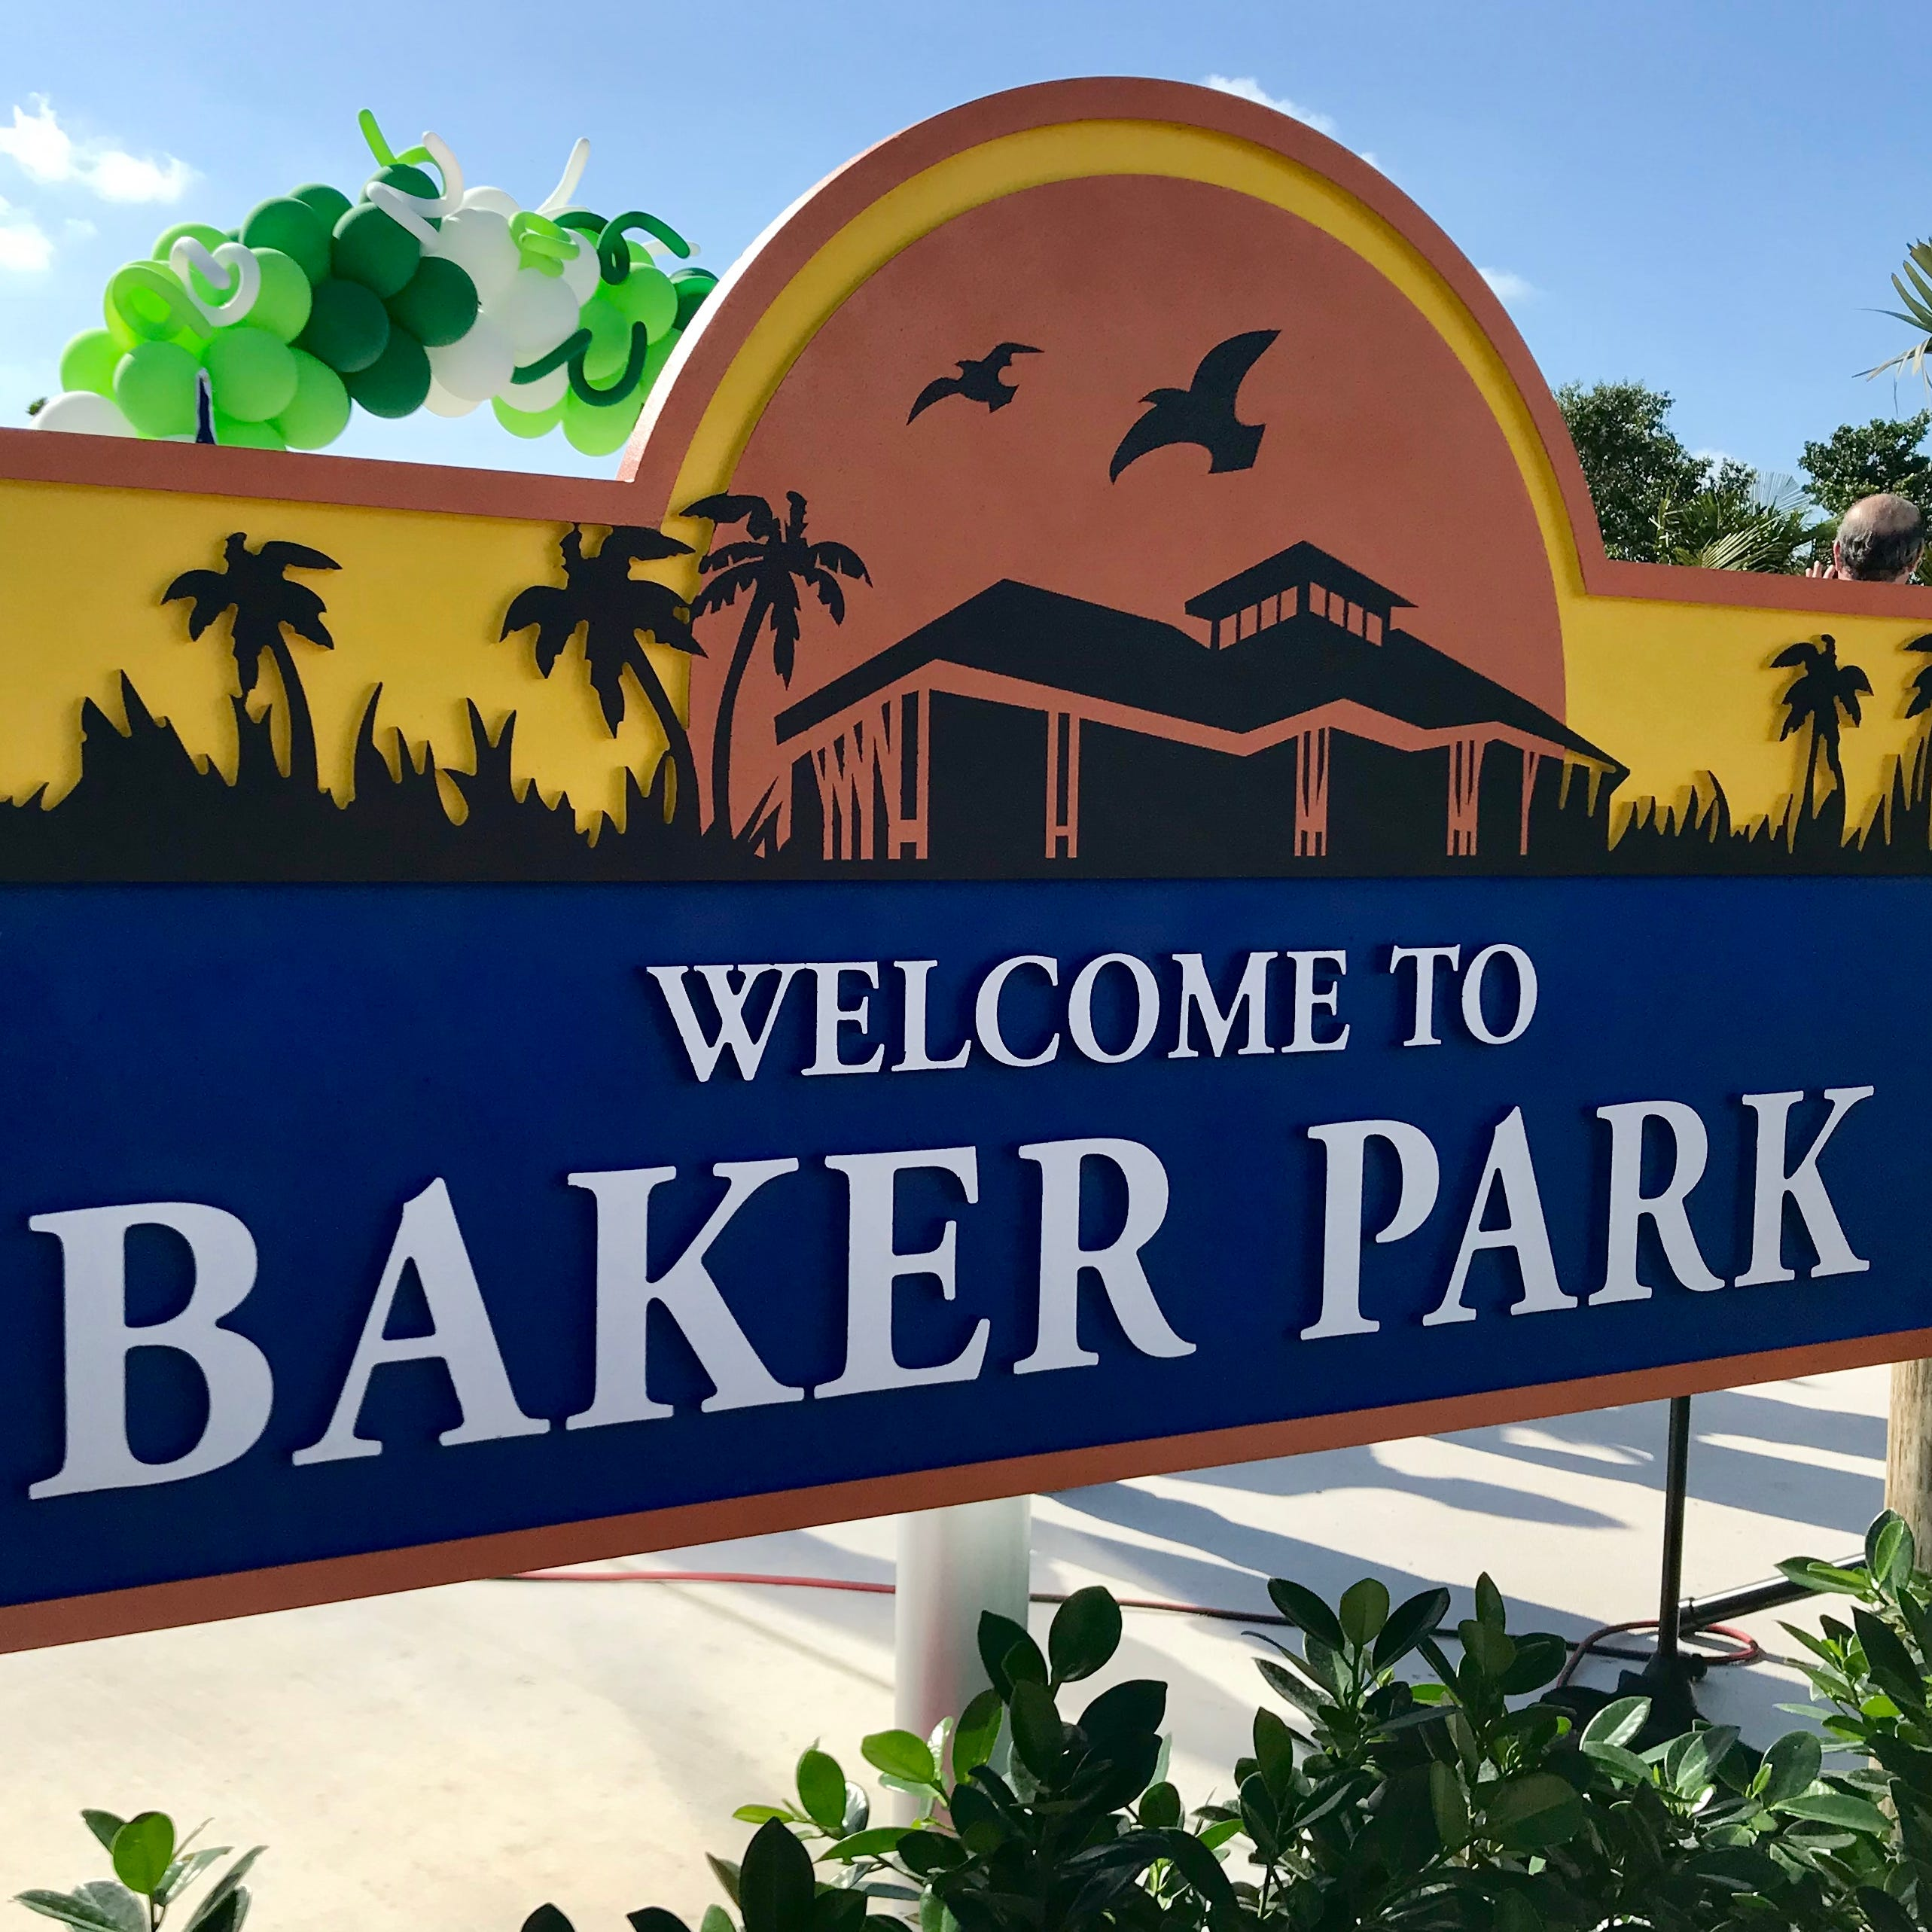 Naples opens part of Baker Park along Gordon River after years of planning and construction